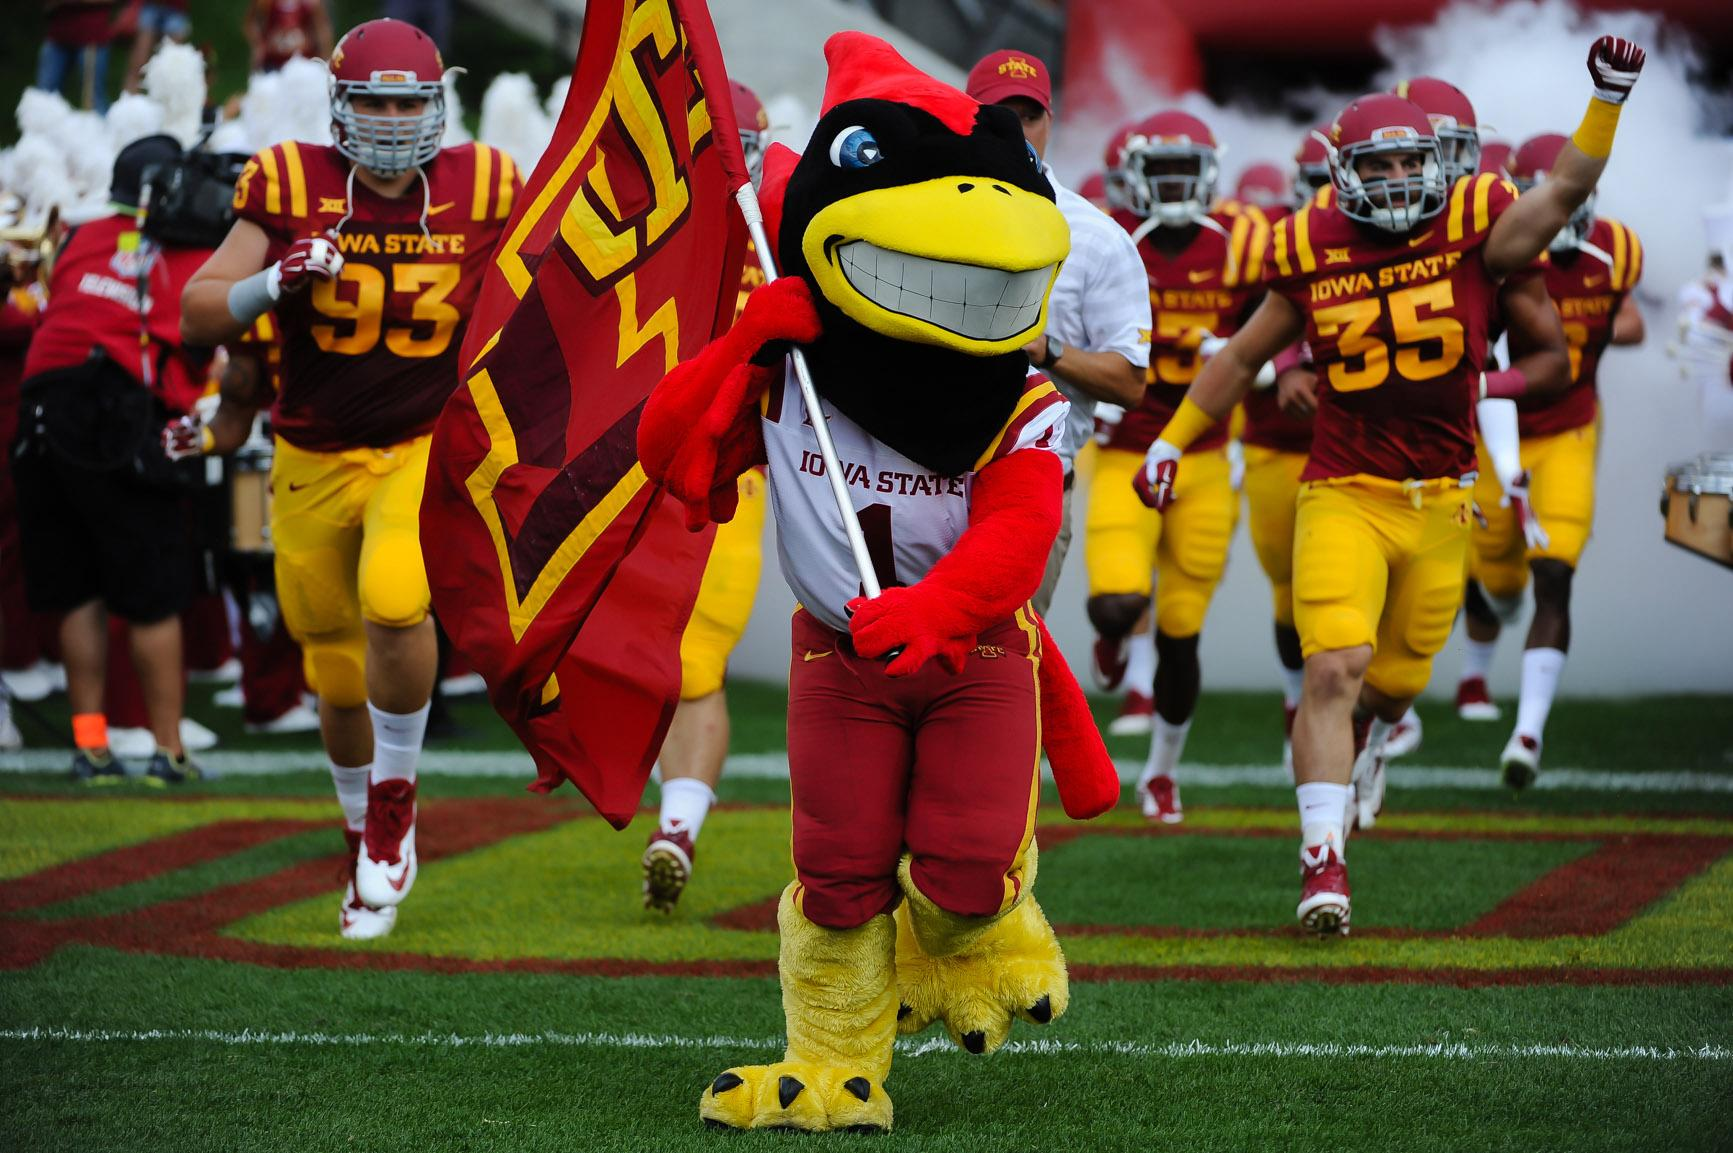 Iowa State's Devlyn Cousin suspended after domestic assault charge